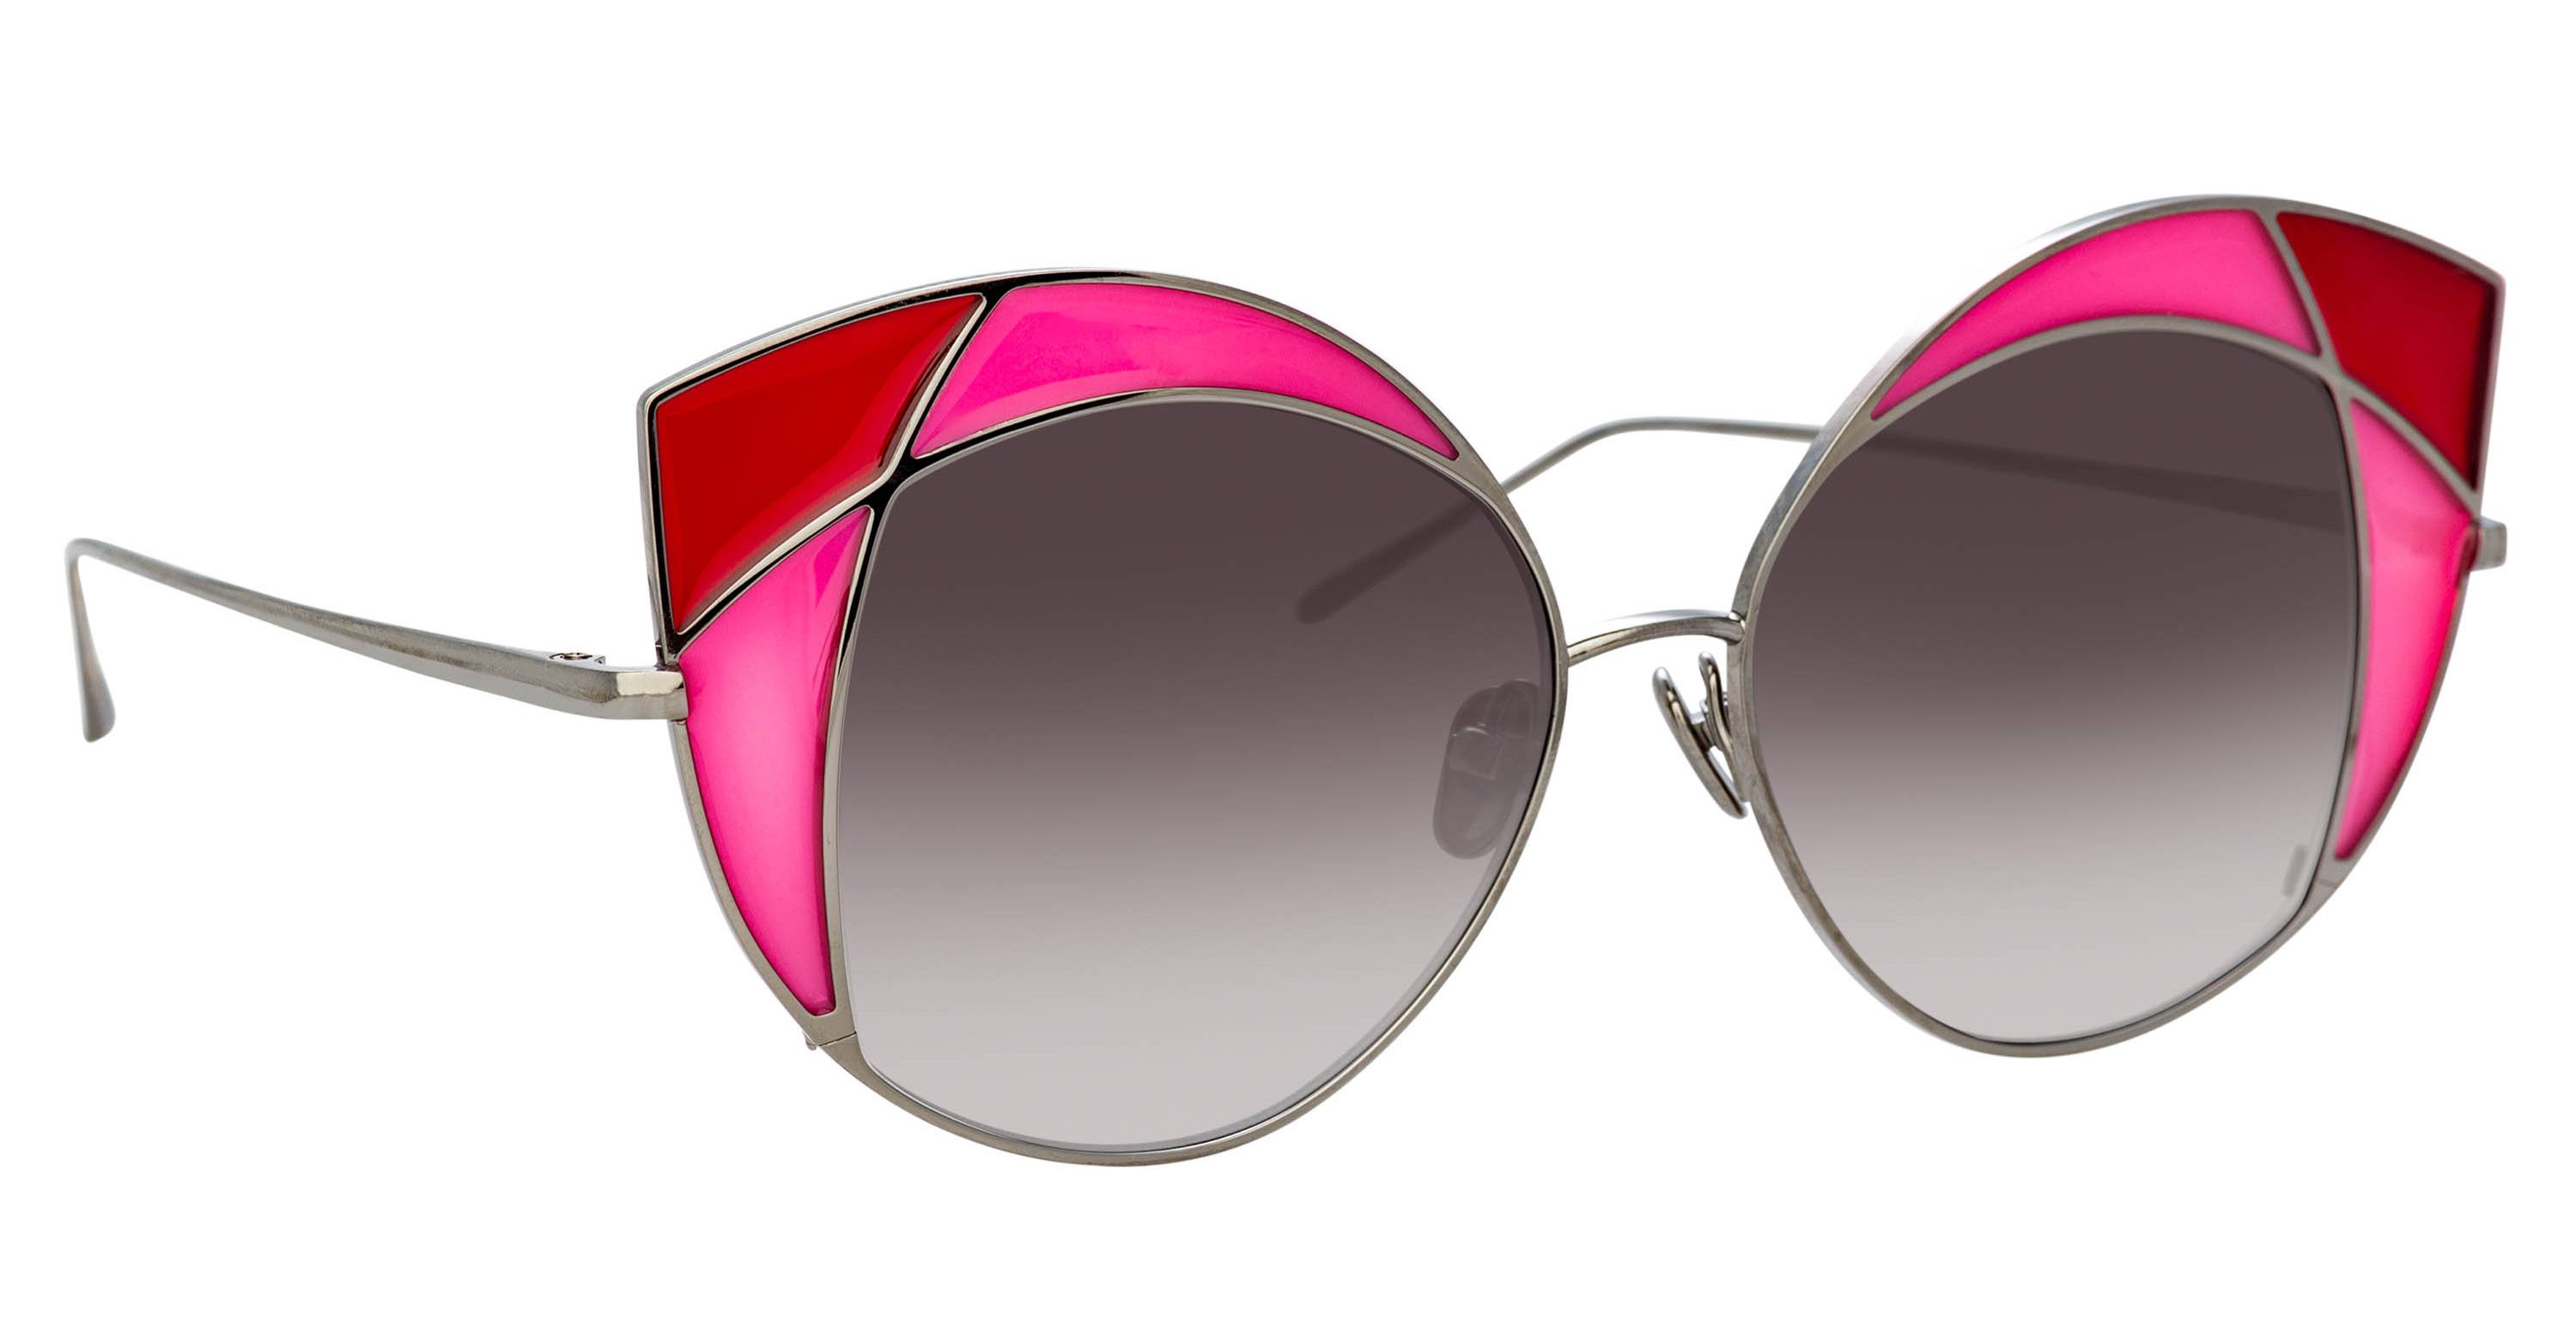 Cat eyes sunglasses with two-tone 'stained glass' corners by Linda Farrow